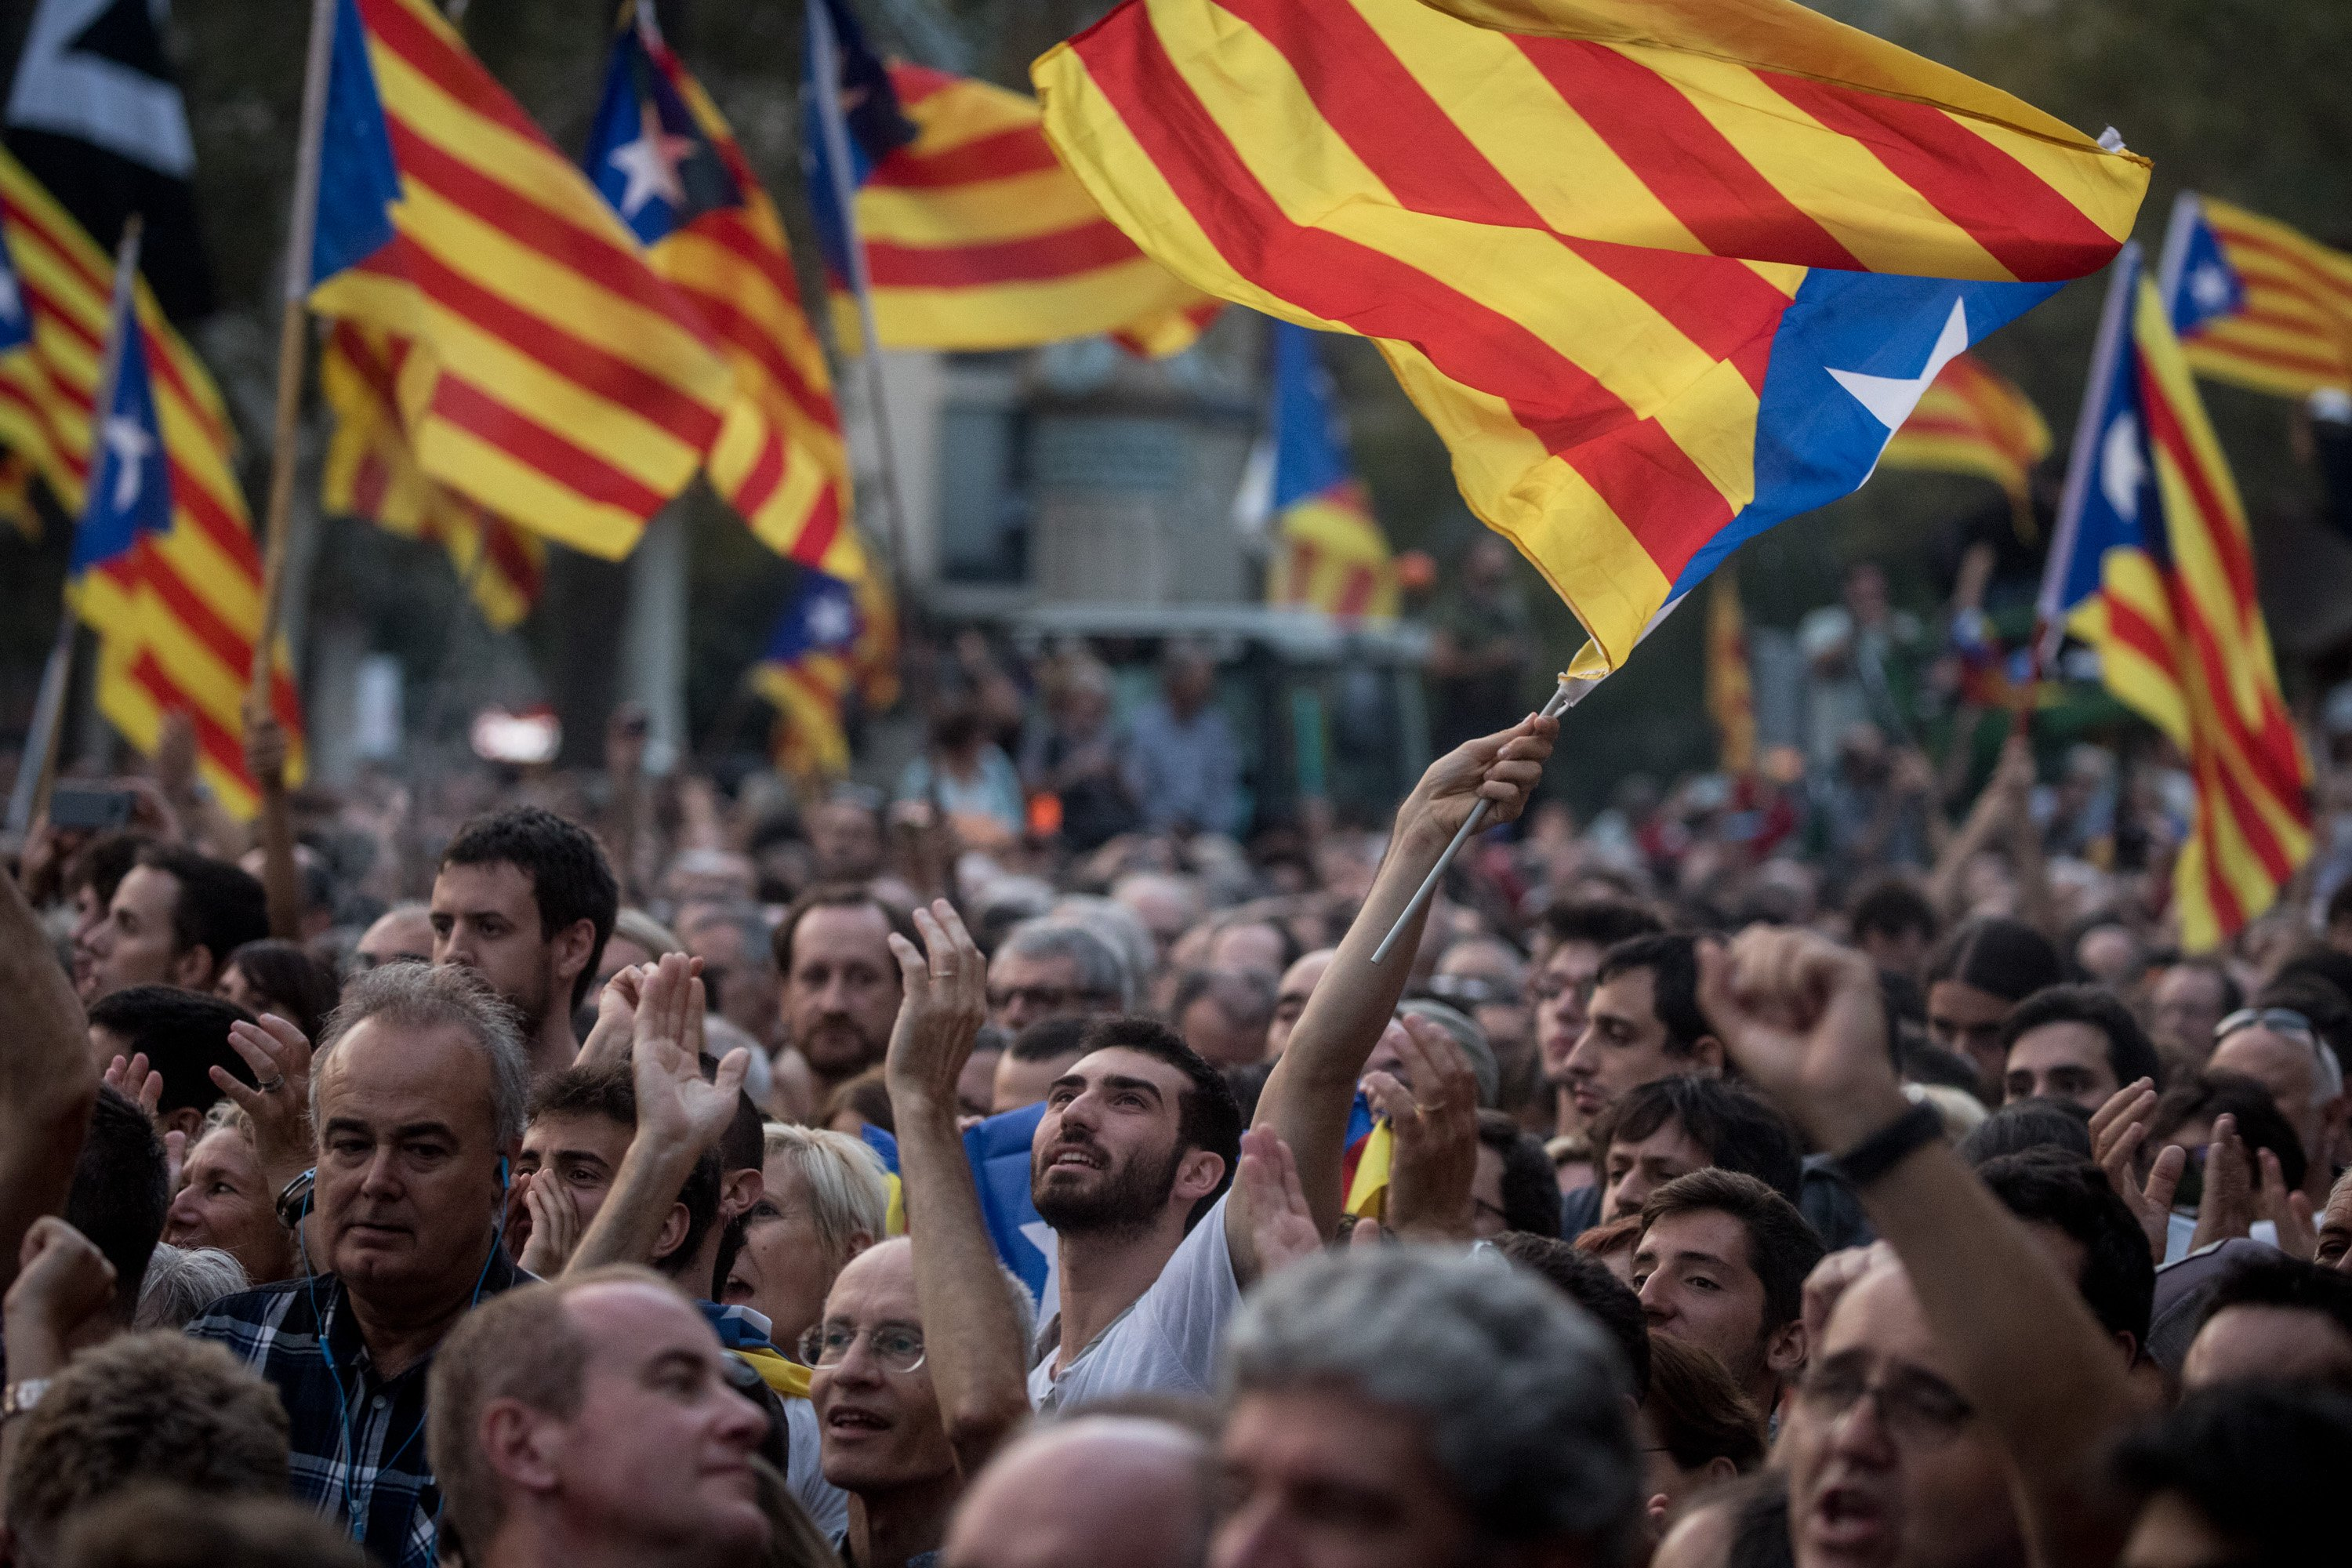 Pro-independence supporters react as they watch a big screen and wait for the address of Catalan President Carles Puigdemont